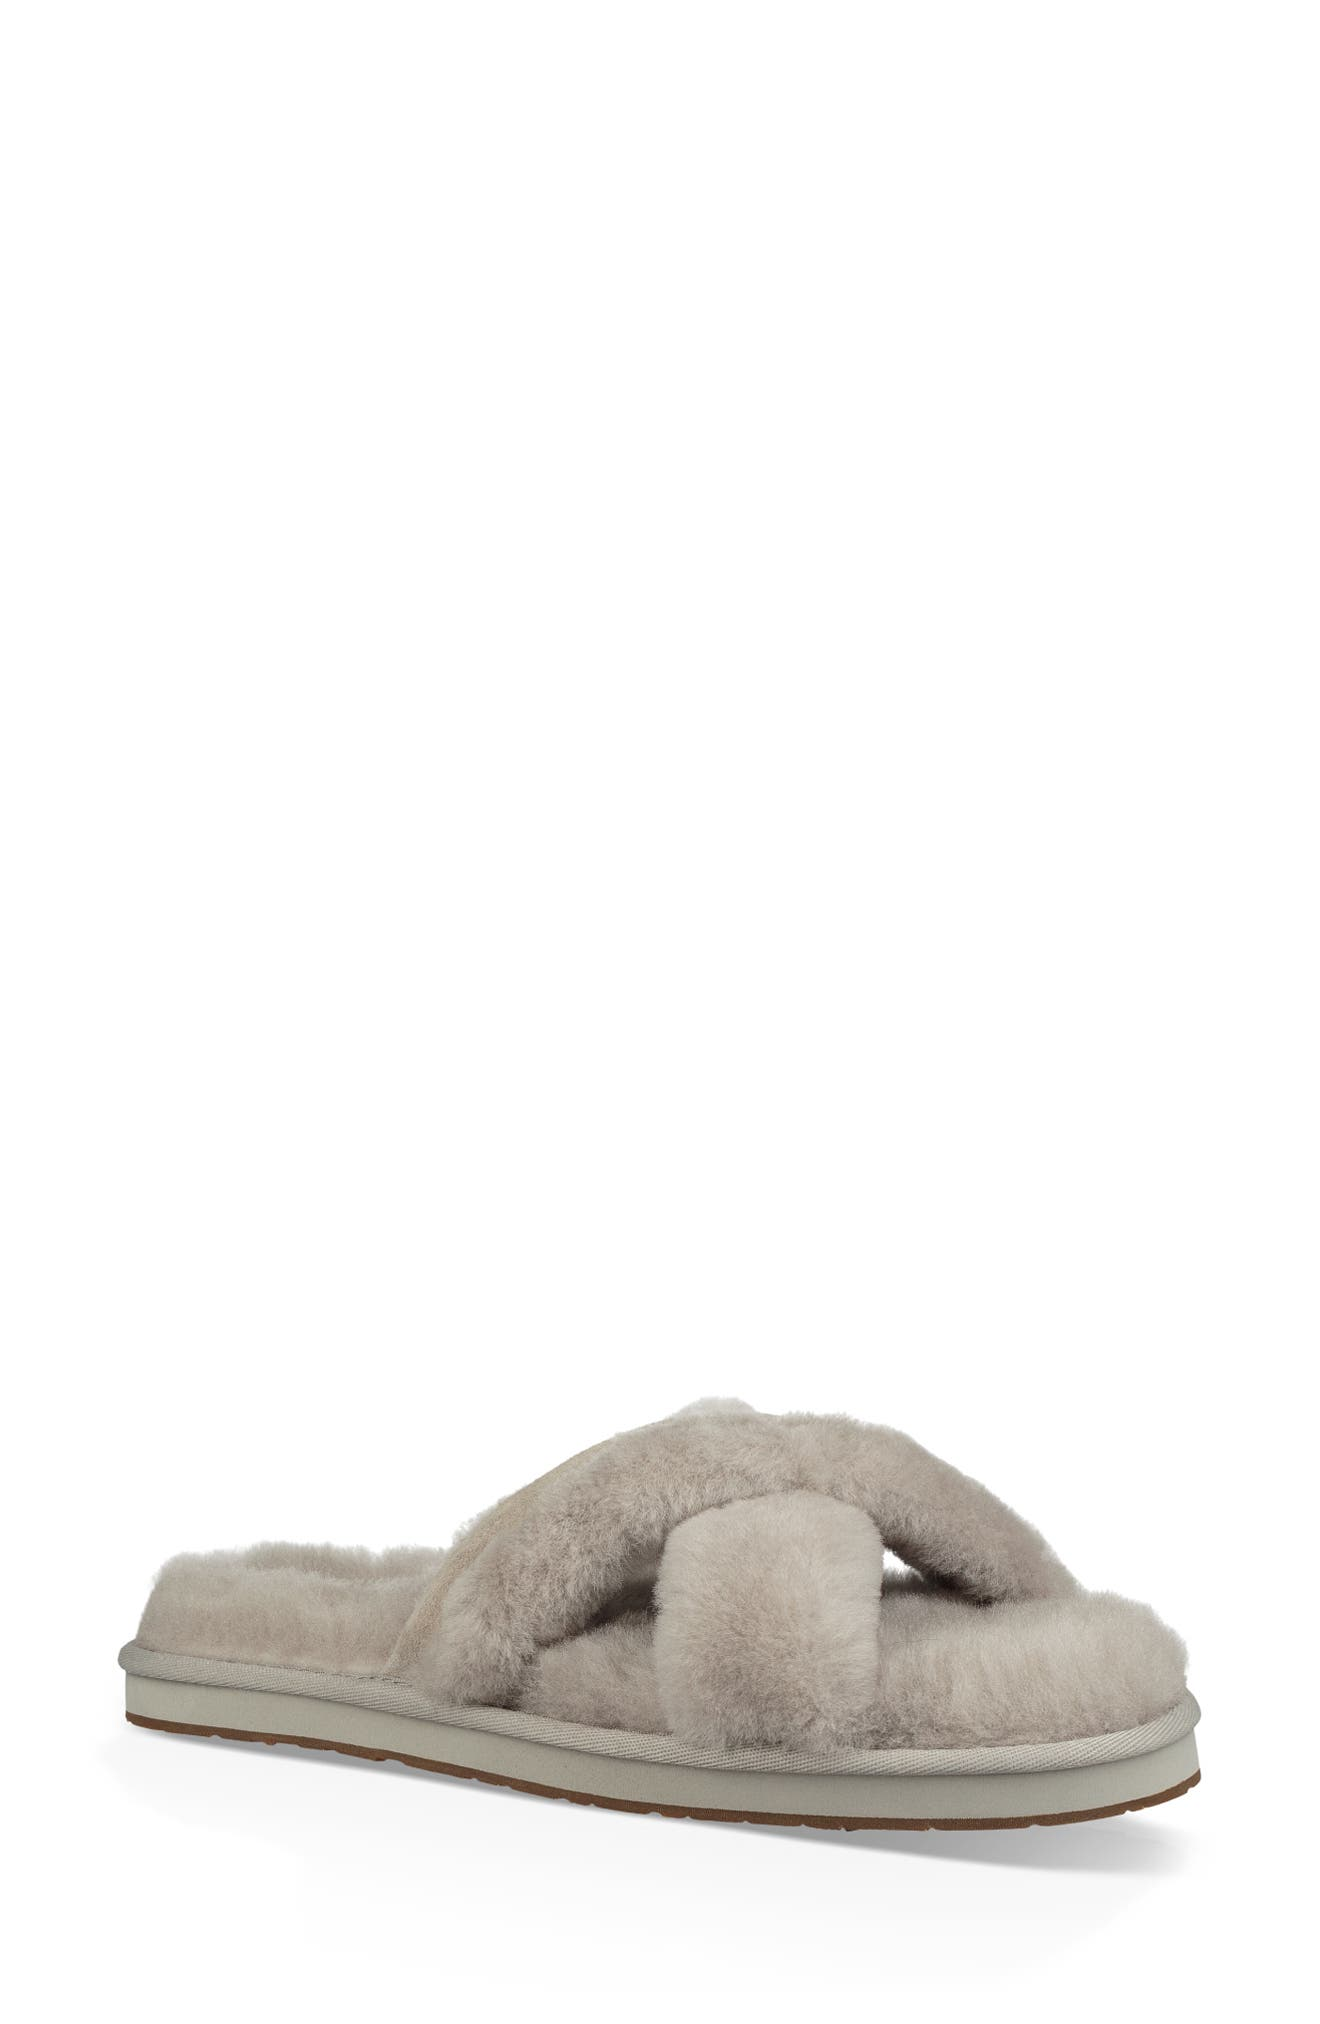 UGG<SUP>®</SUP>, Abela Genuine Shearling Flip Flop, Main thumbnail 1, color, 020